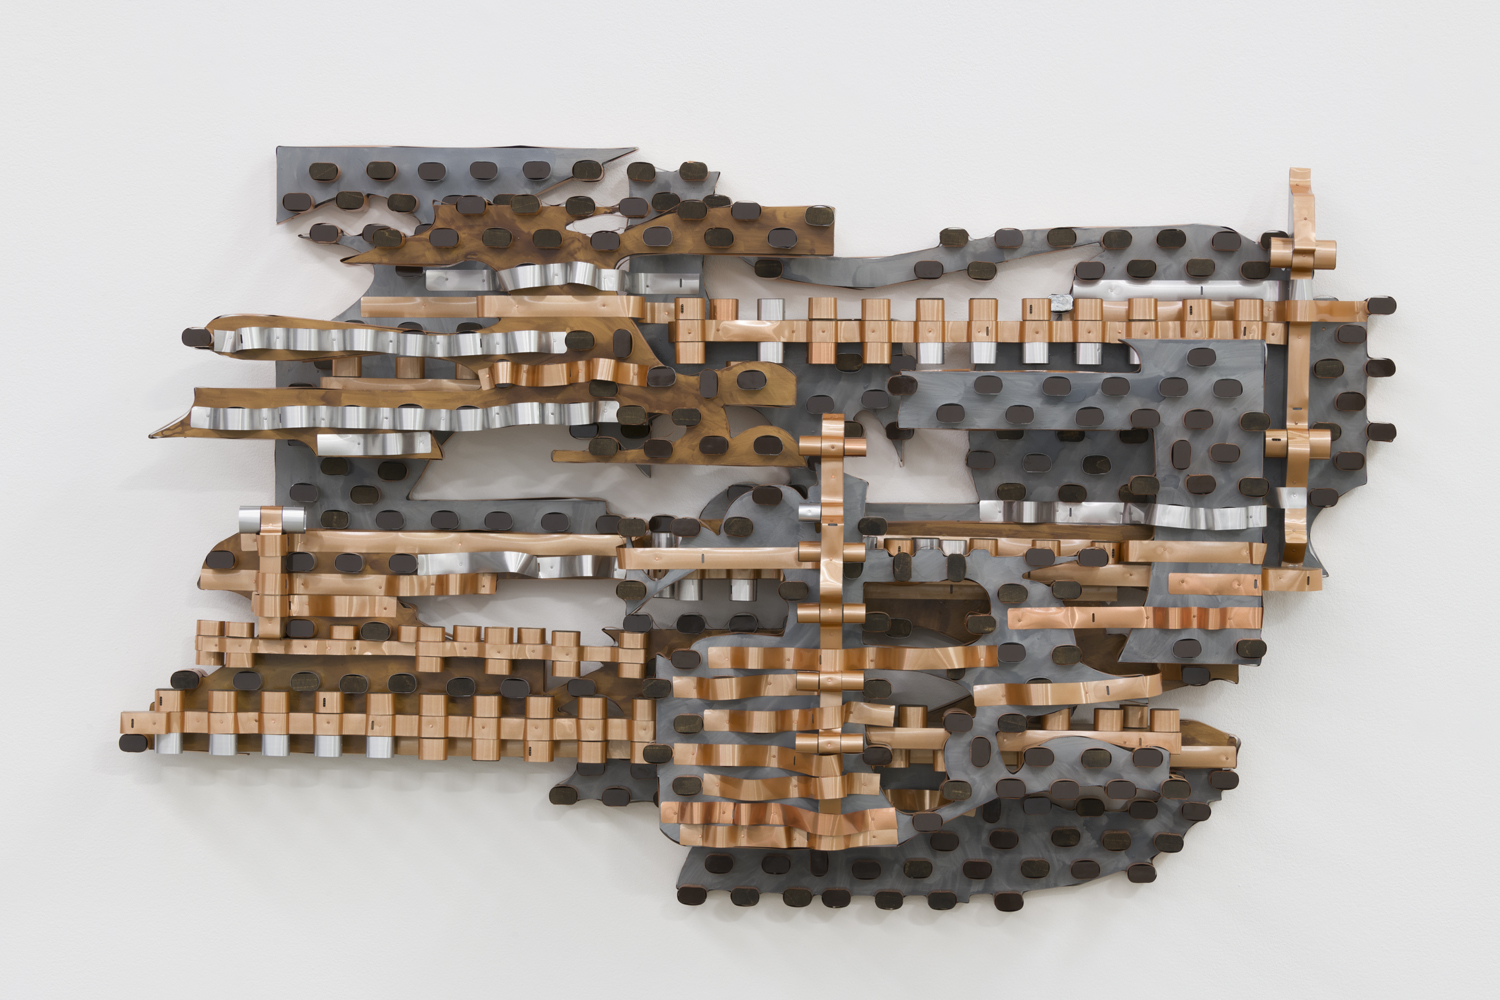 Anne Libby, Solar Medicine, 2018, plywood, formica, copper pipe, 37h x 61w x 13d in.